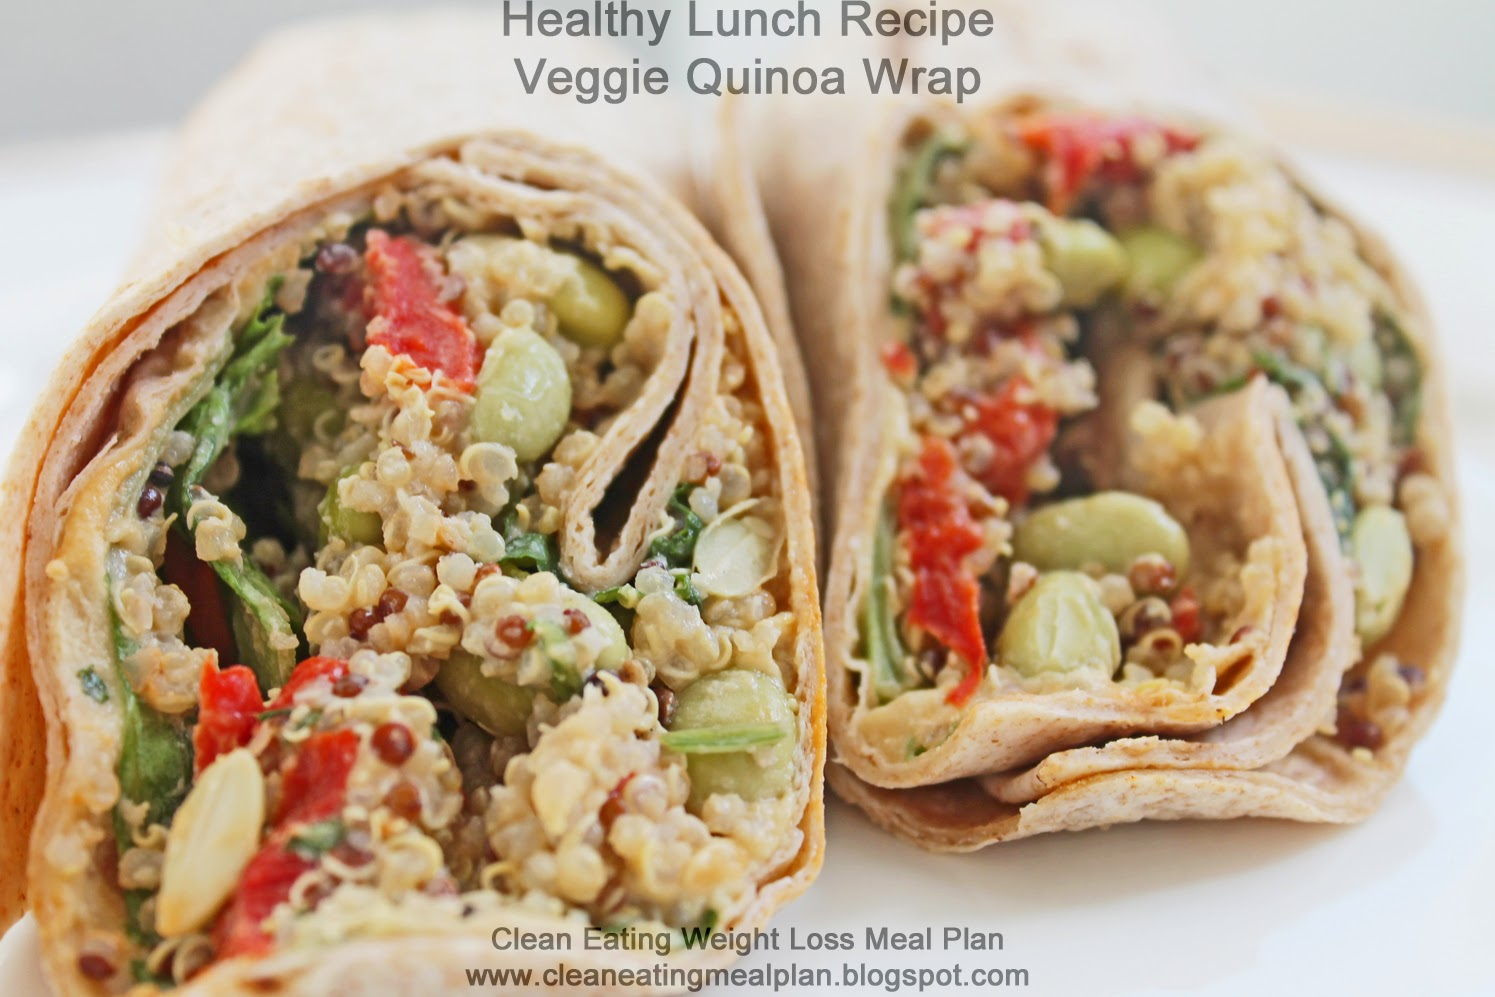 Healthy Lunch Recipe For Weight Loss Meal Plan Veggie Quinoa Wrap